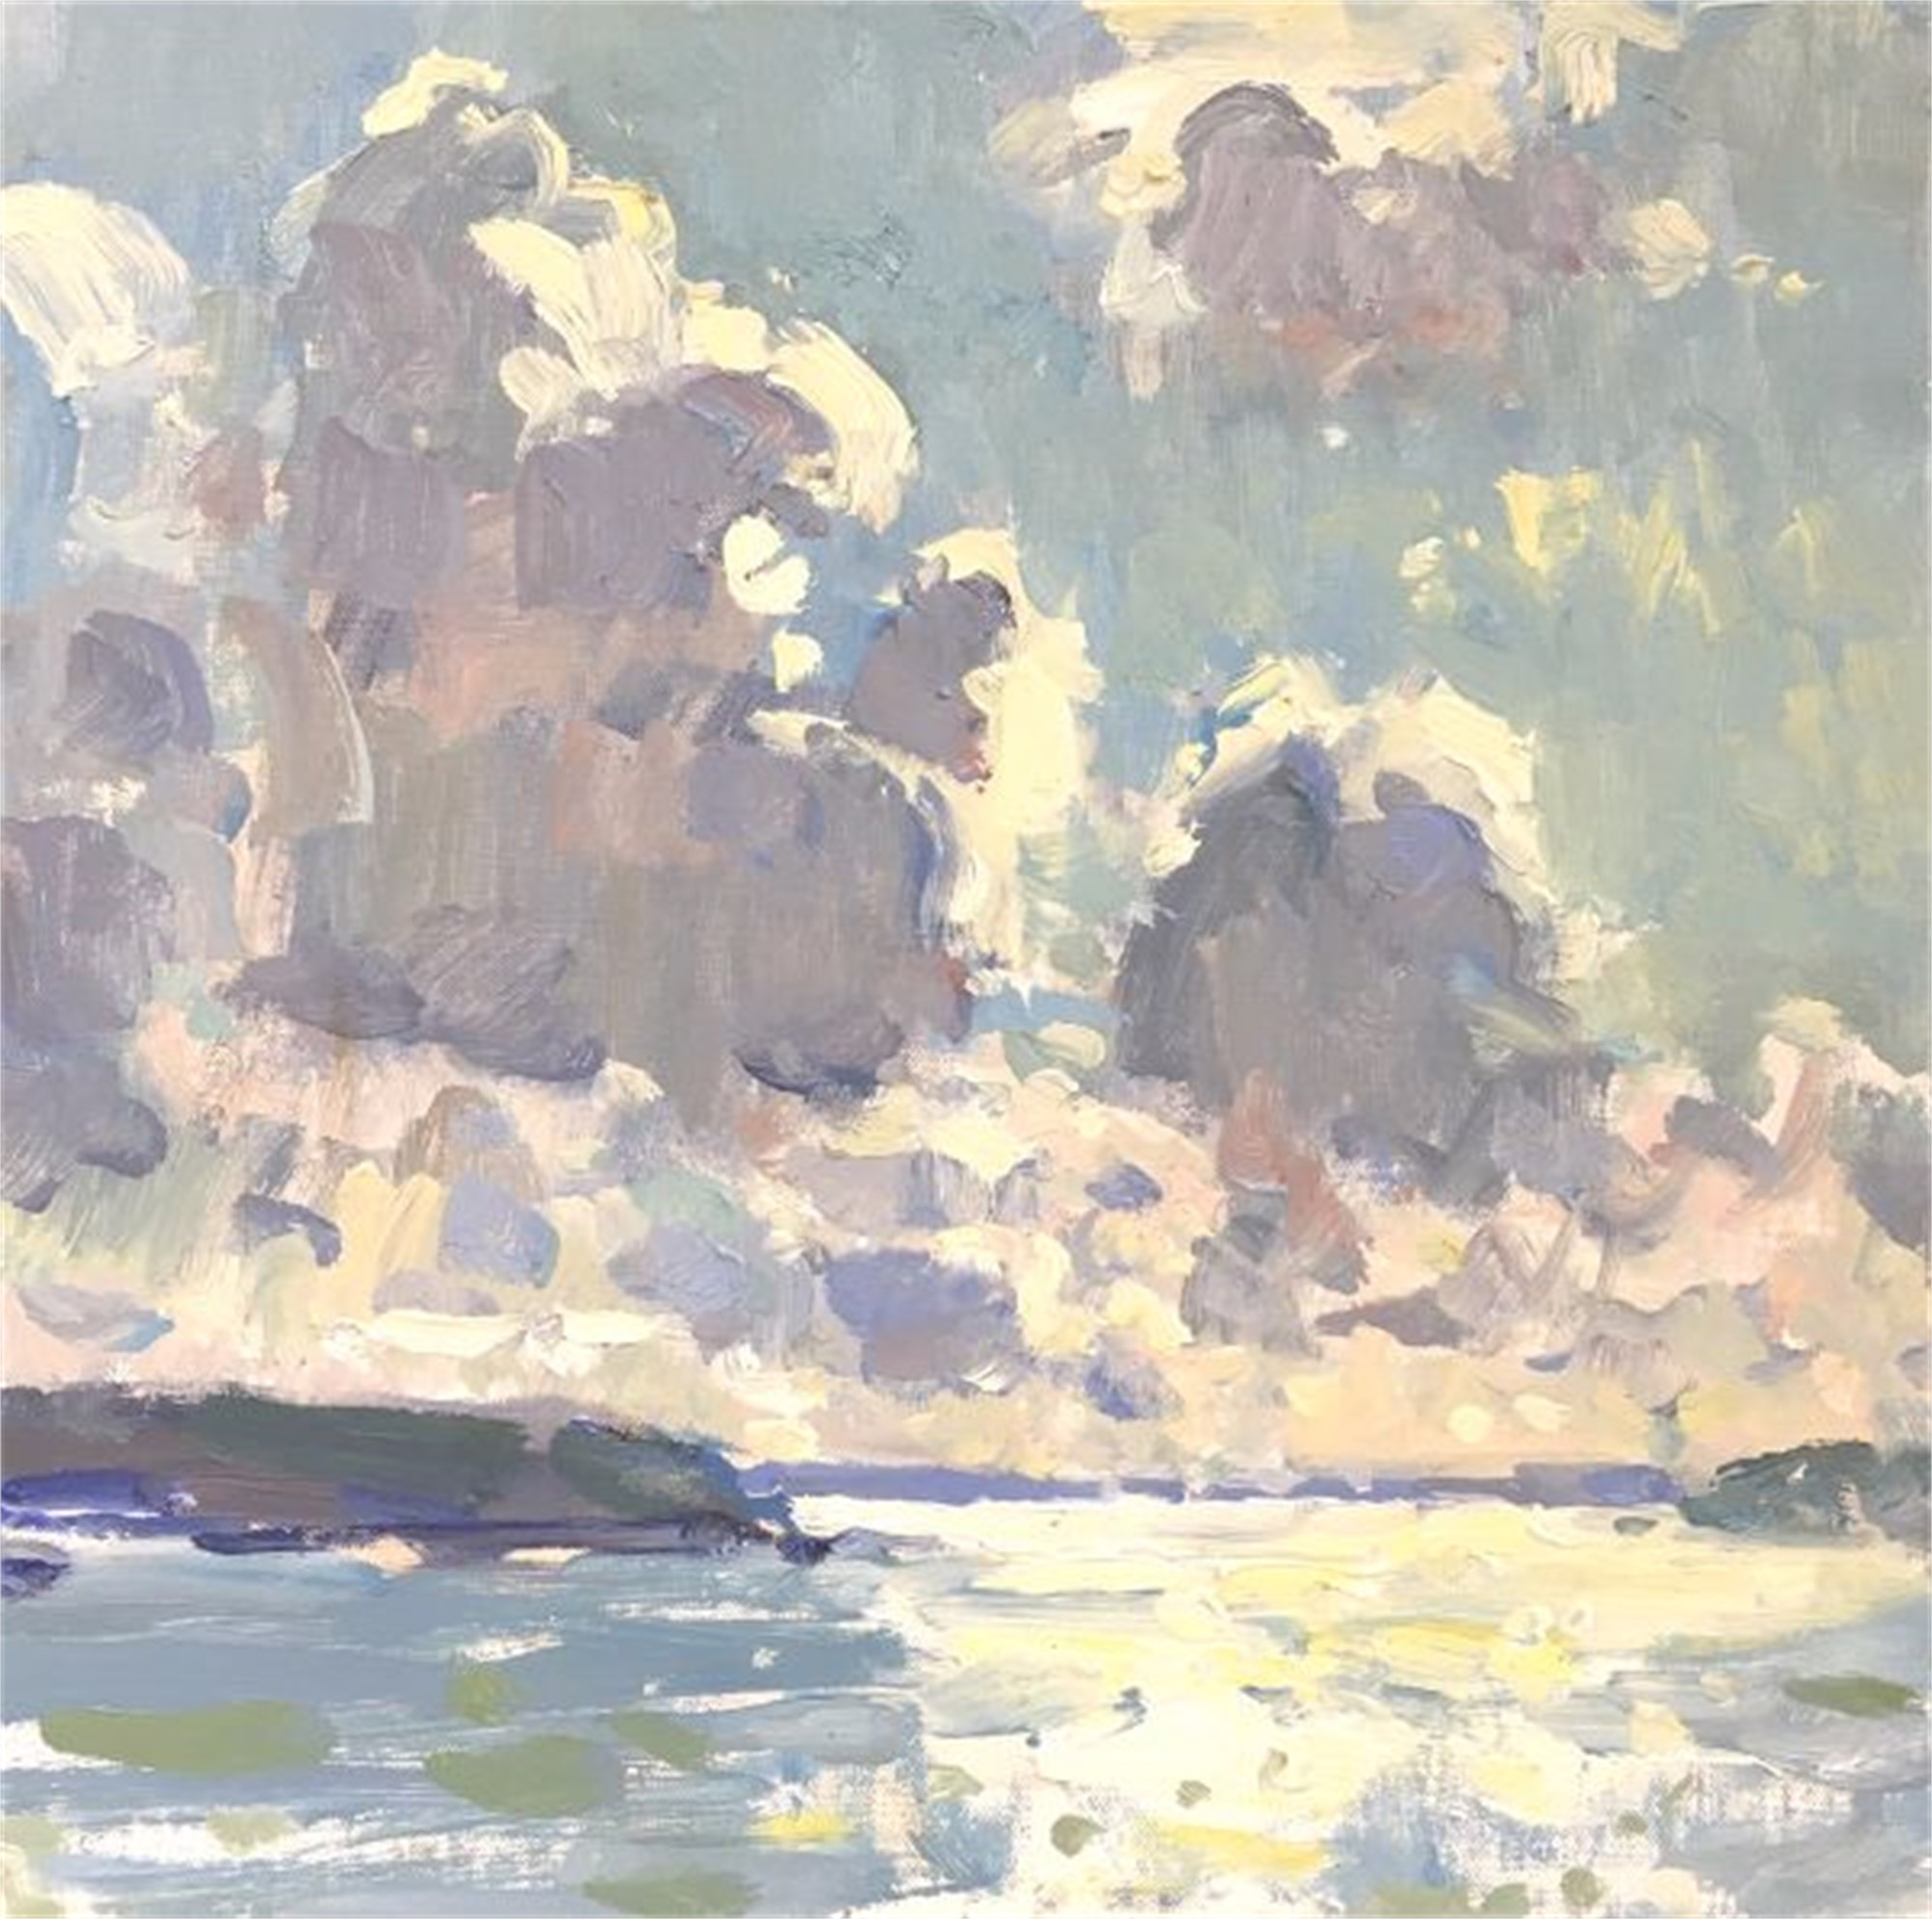 Clouds Over the Shimmering Water by Richard Oversmith